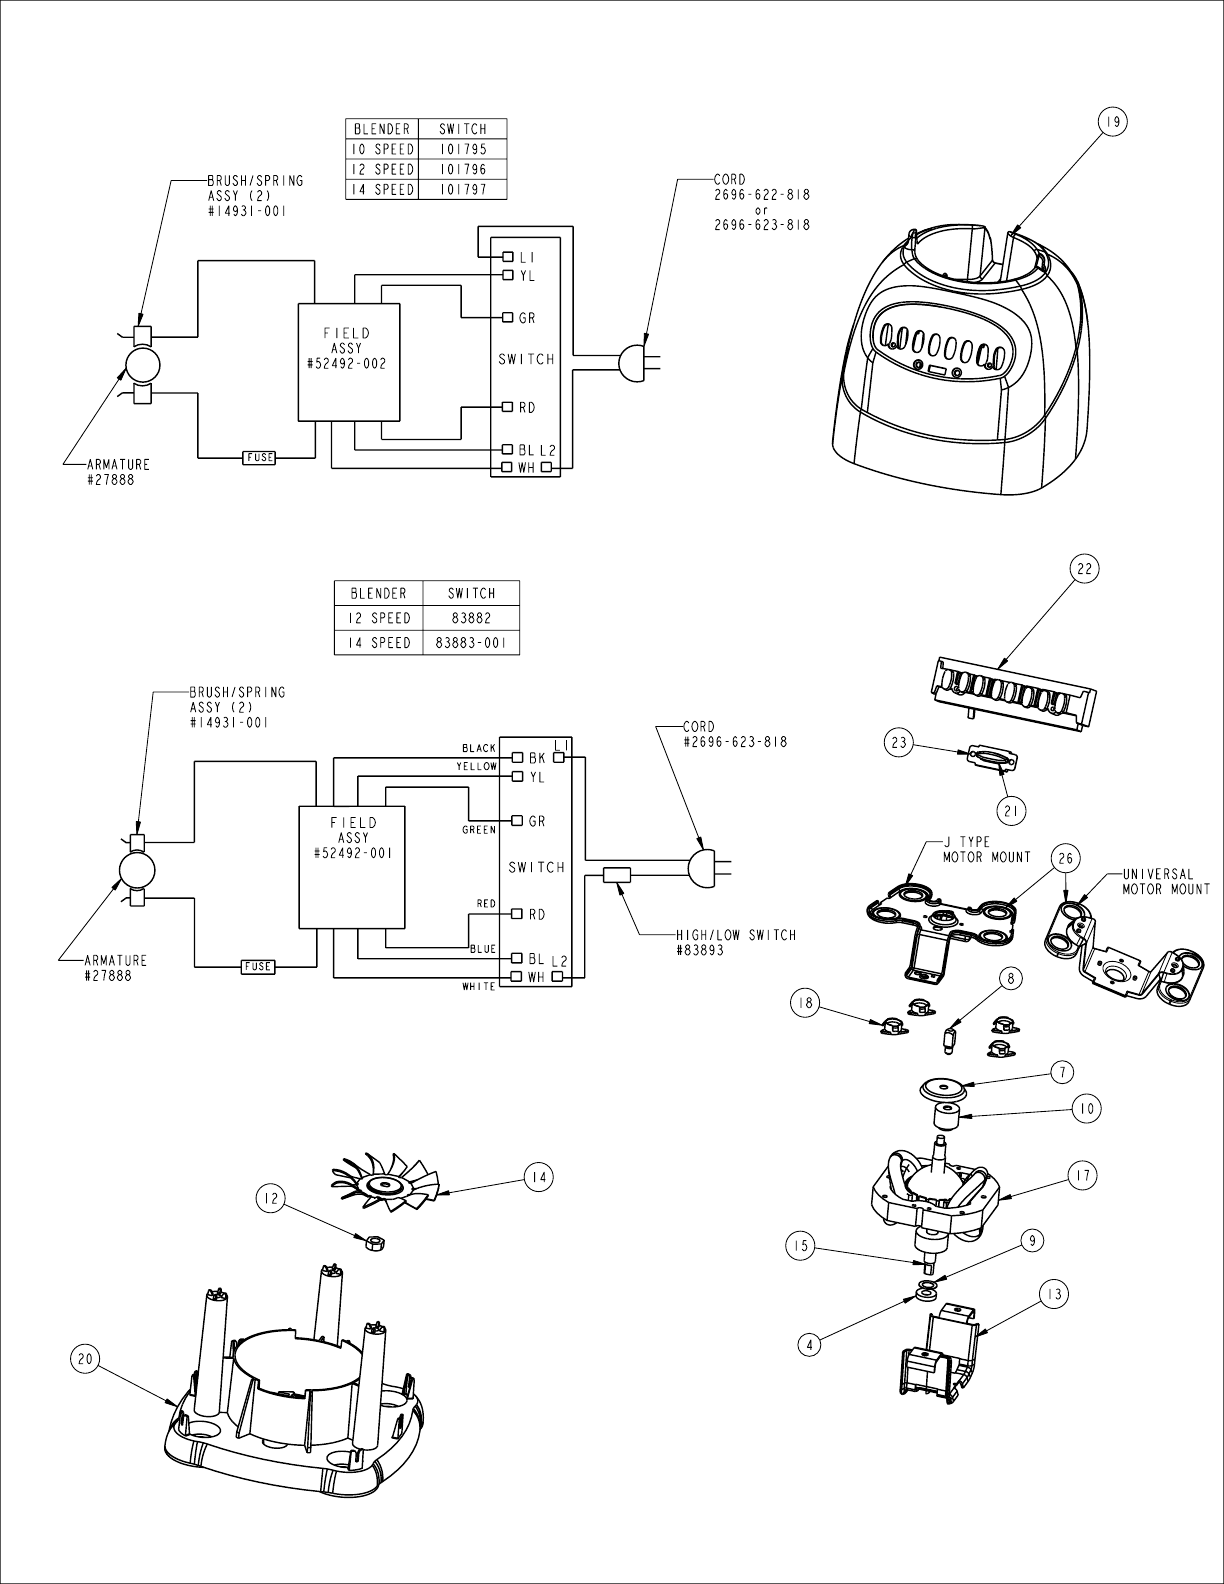 kitchenaid mixer exploded view : clairelevy